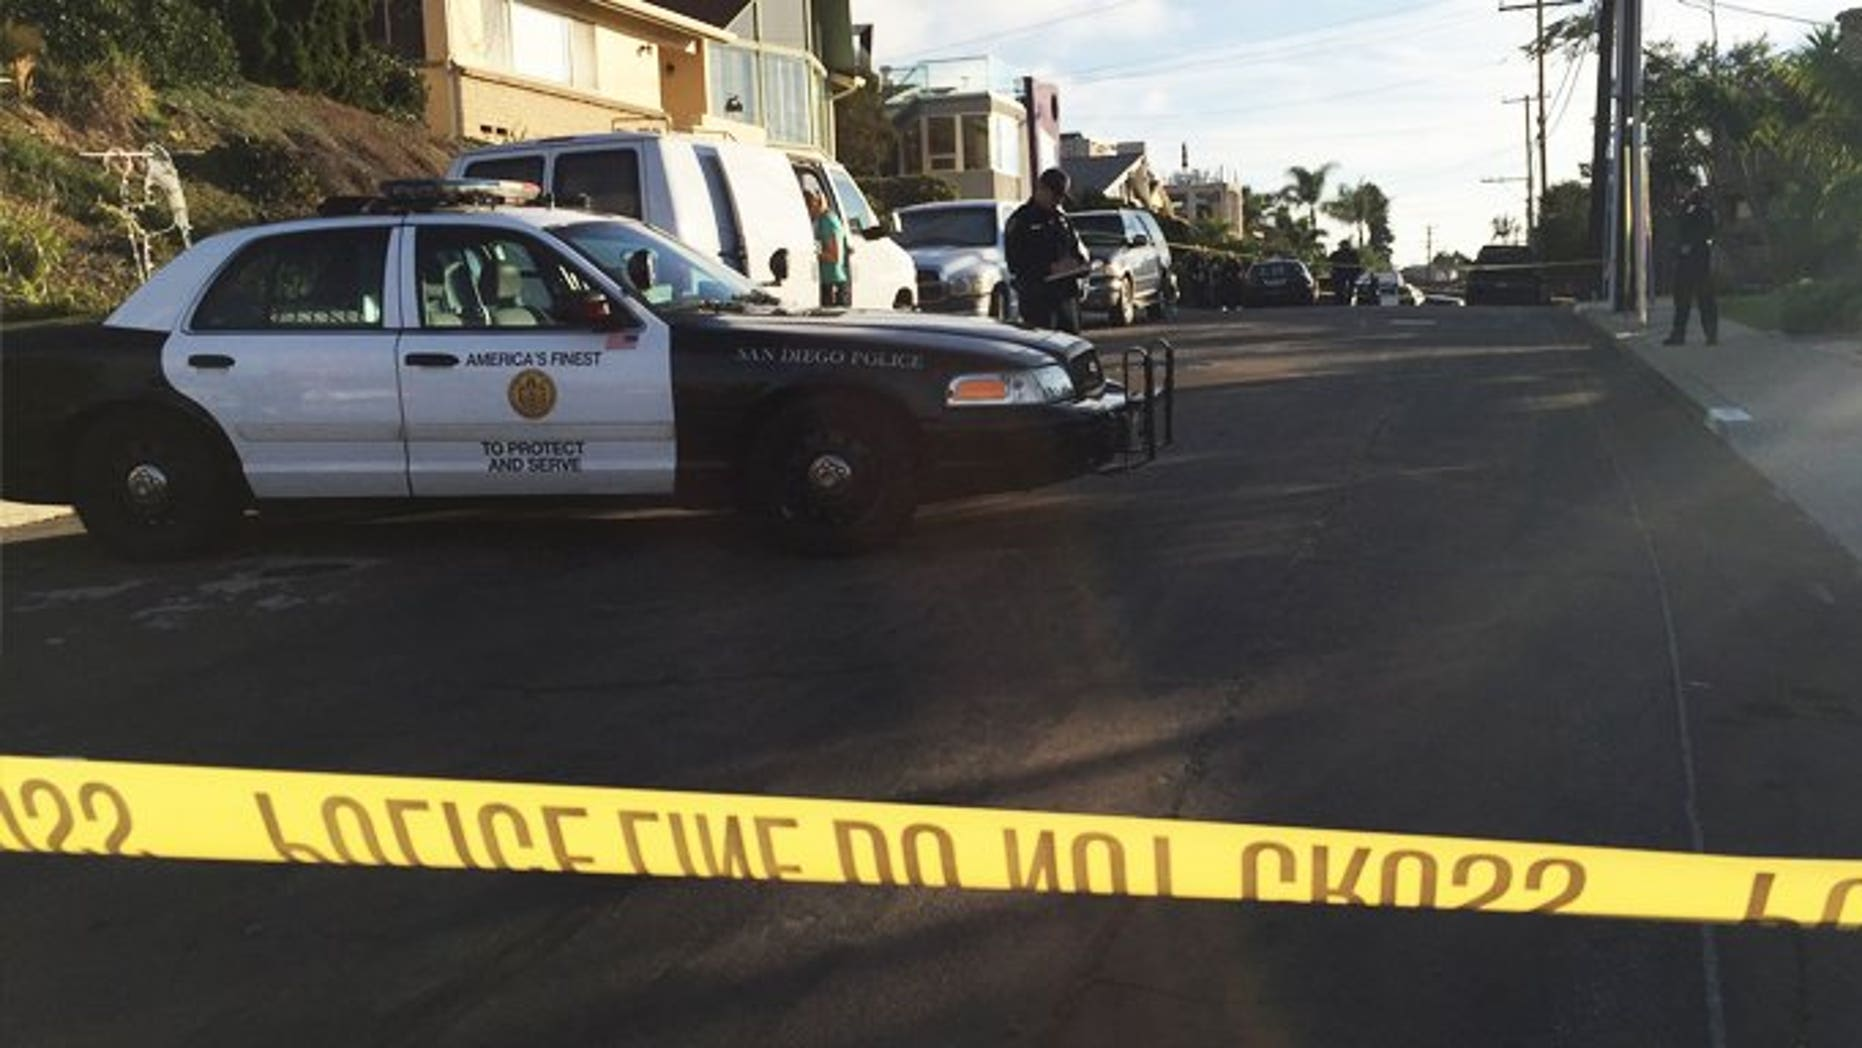 The crime scene in the San Diego neighborhood of Point Loma.